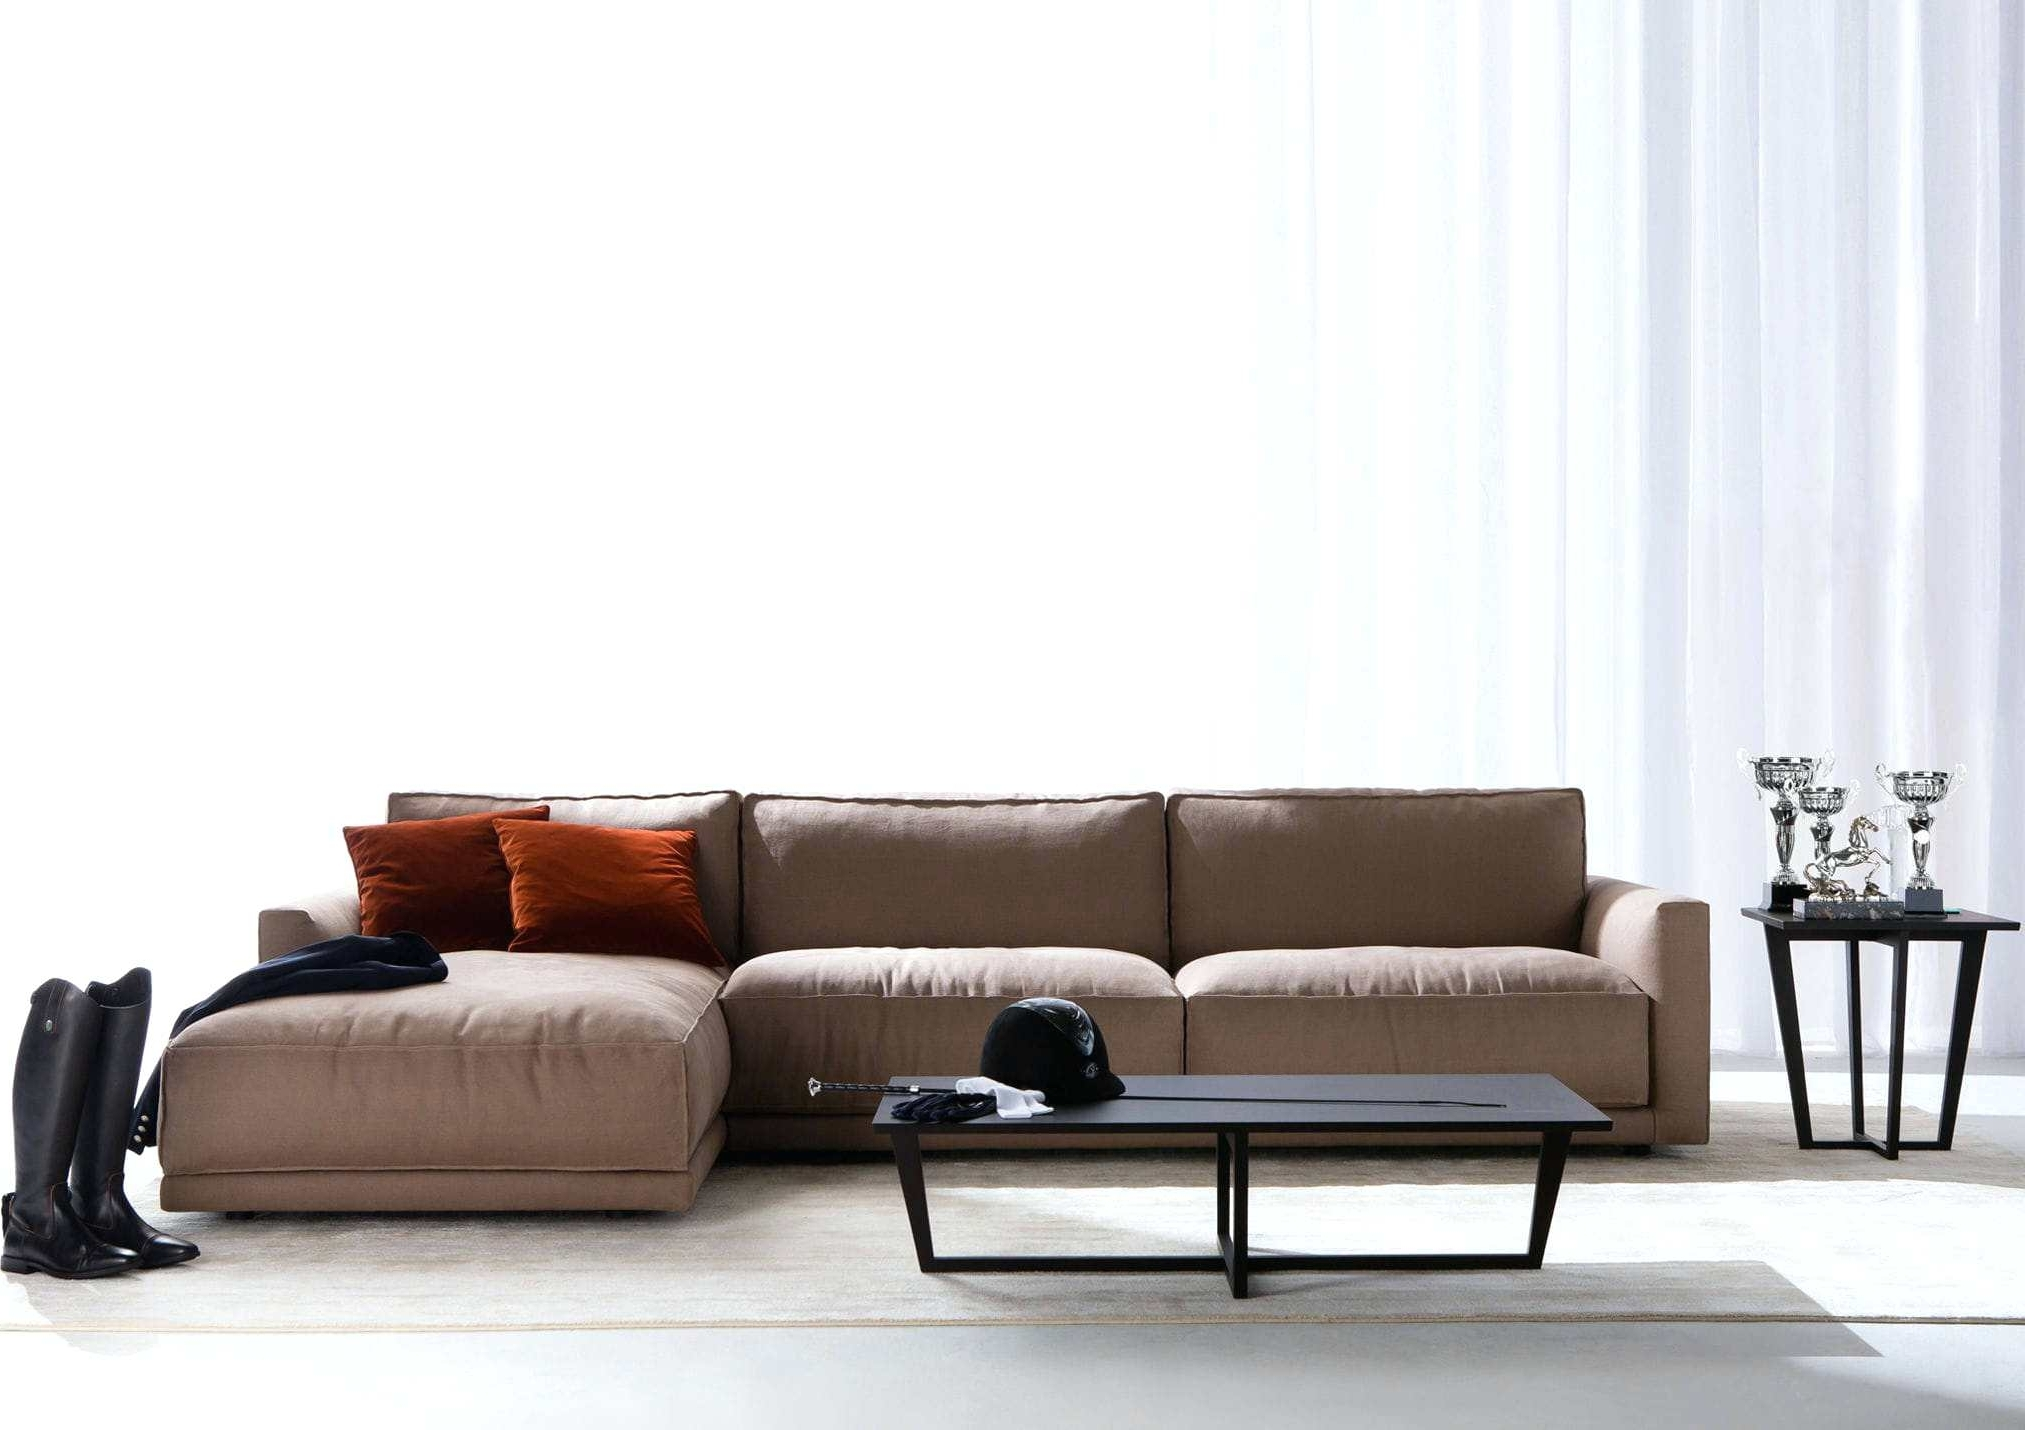 Widely Used Contemporaryther Furniture High Point Nc Modern Sofas And Inside High Point Nc Sectional Sofas (View 20 of 20)